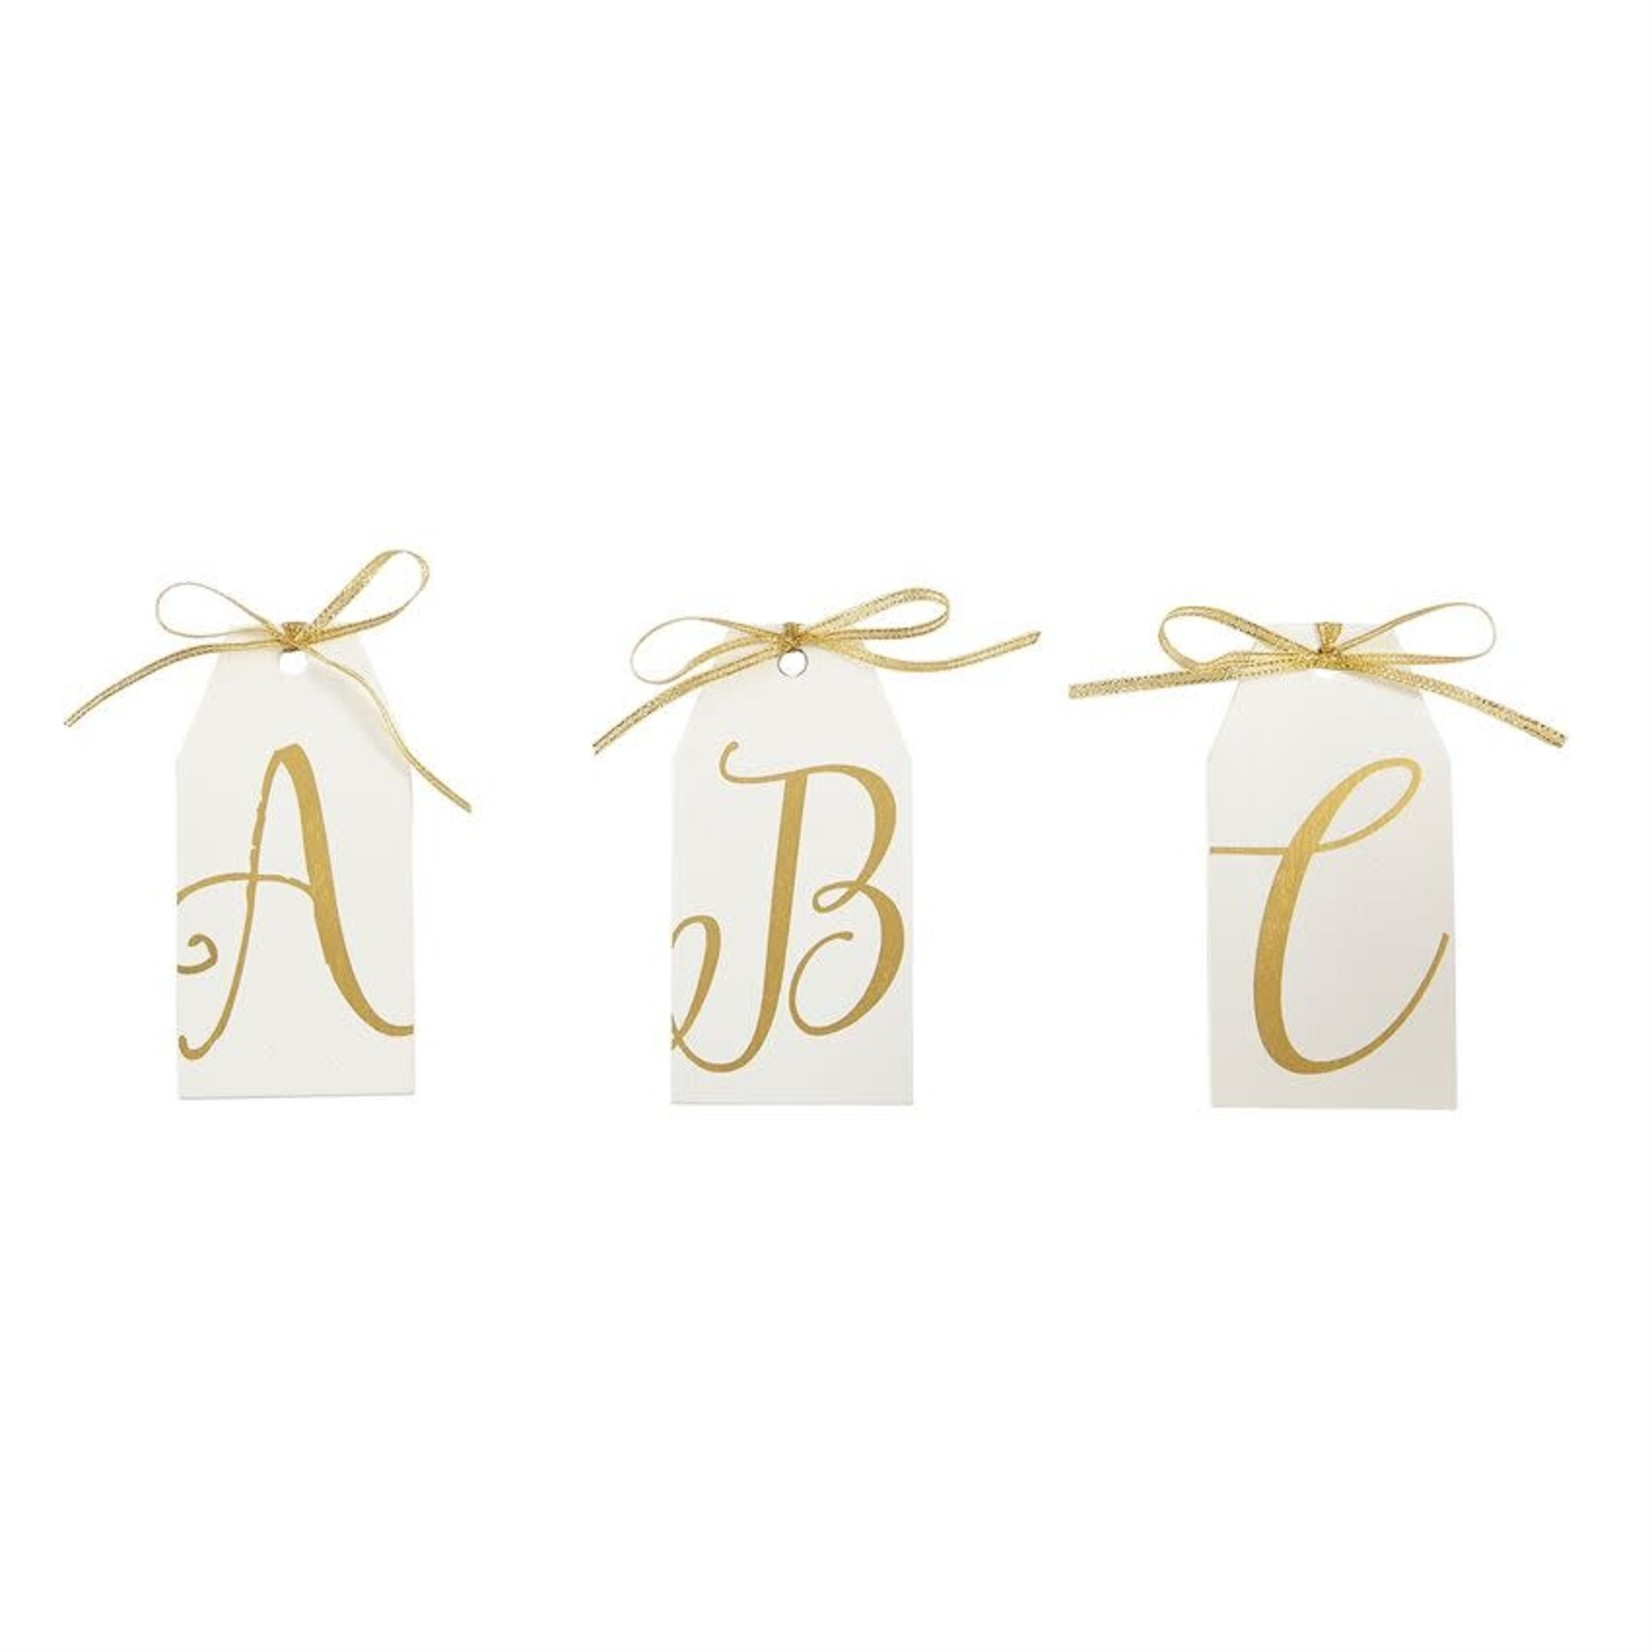 MudPie Gold Initial Wood Tags Assortment